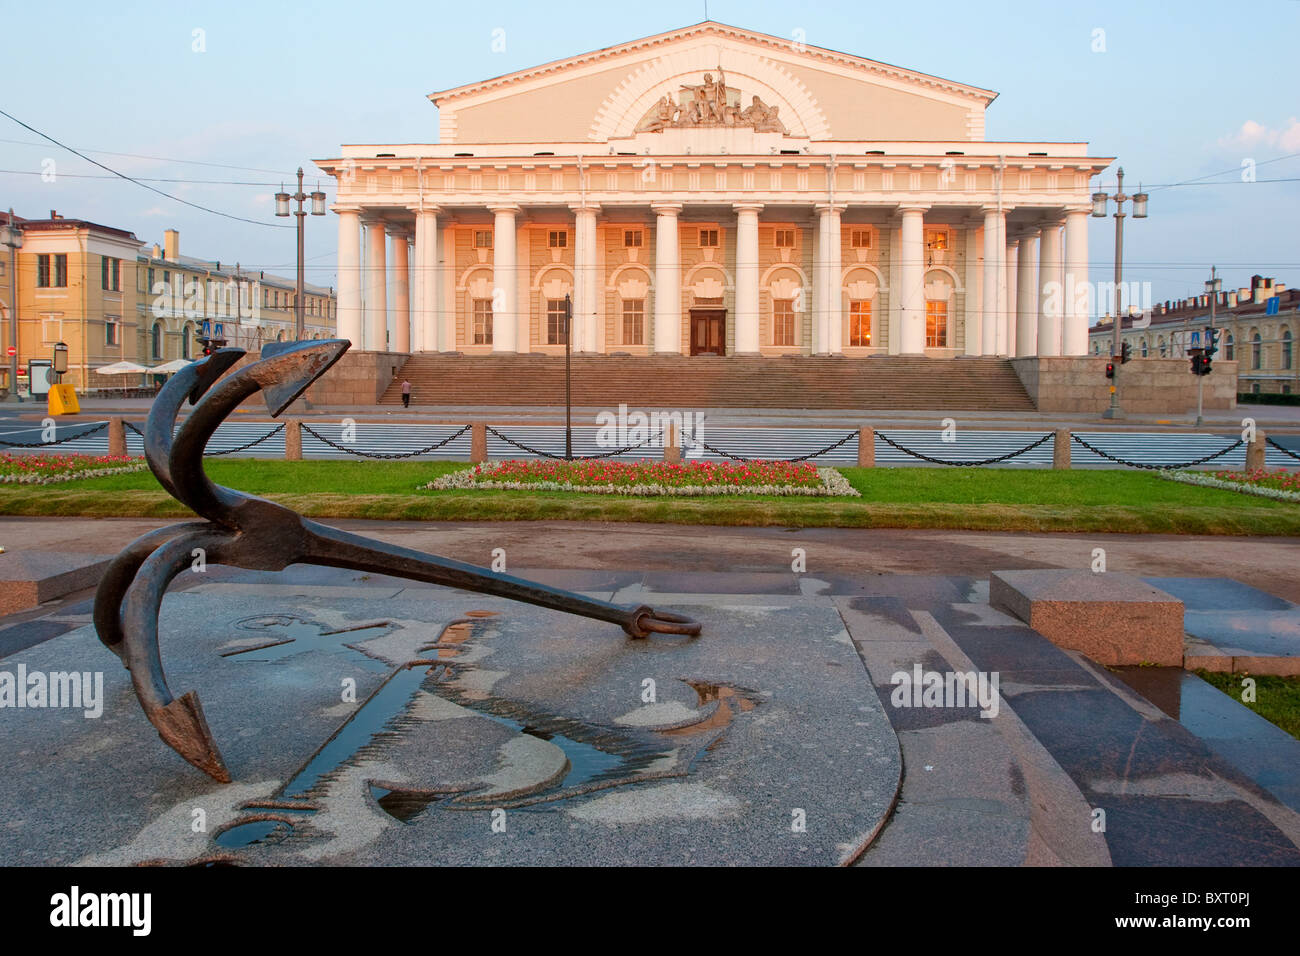 Military and sea museum (The Exchange Central Naval Museum), St Petersburg, Russia Stock Photo